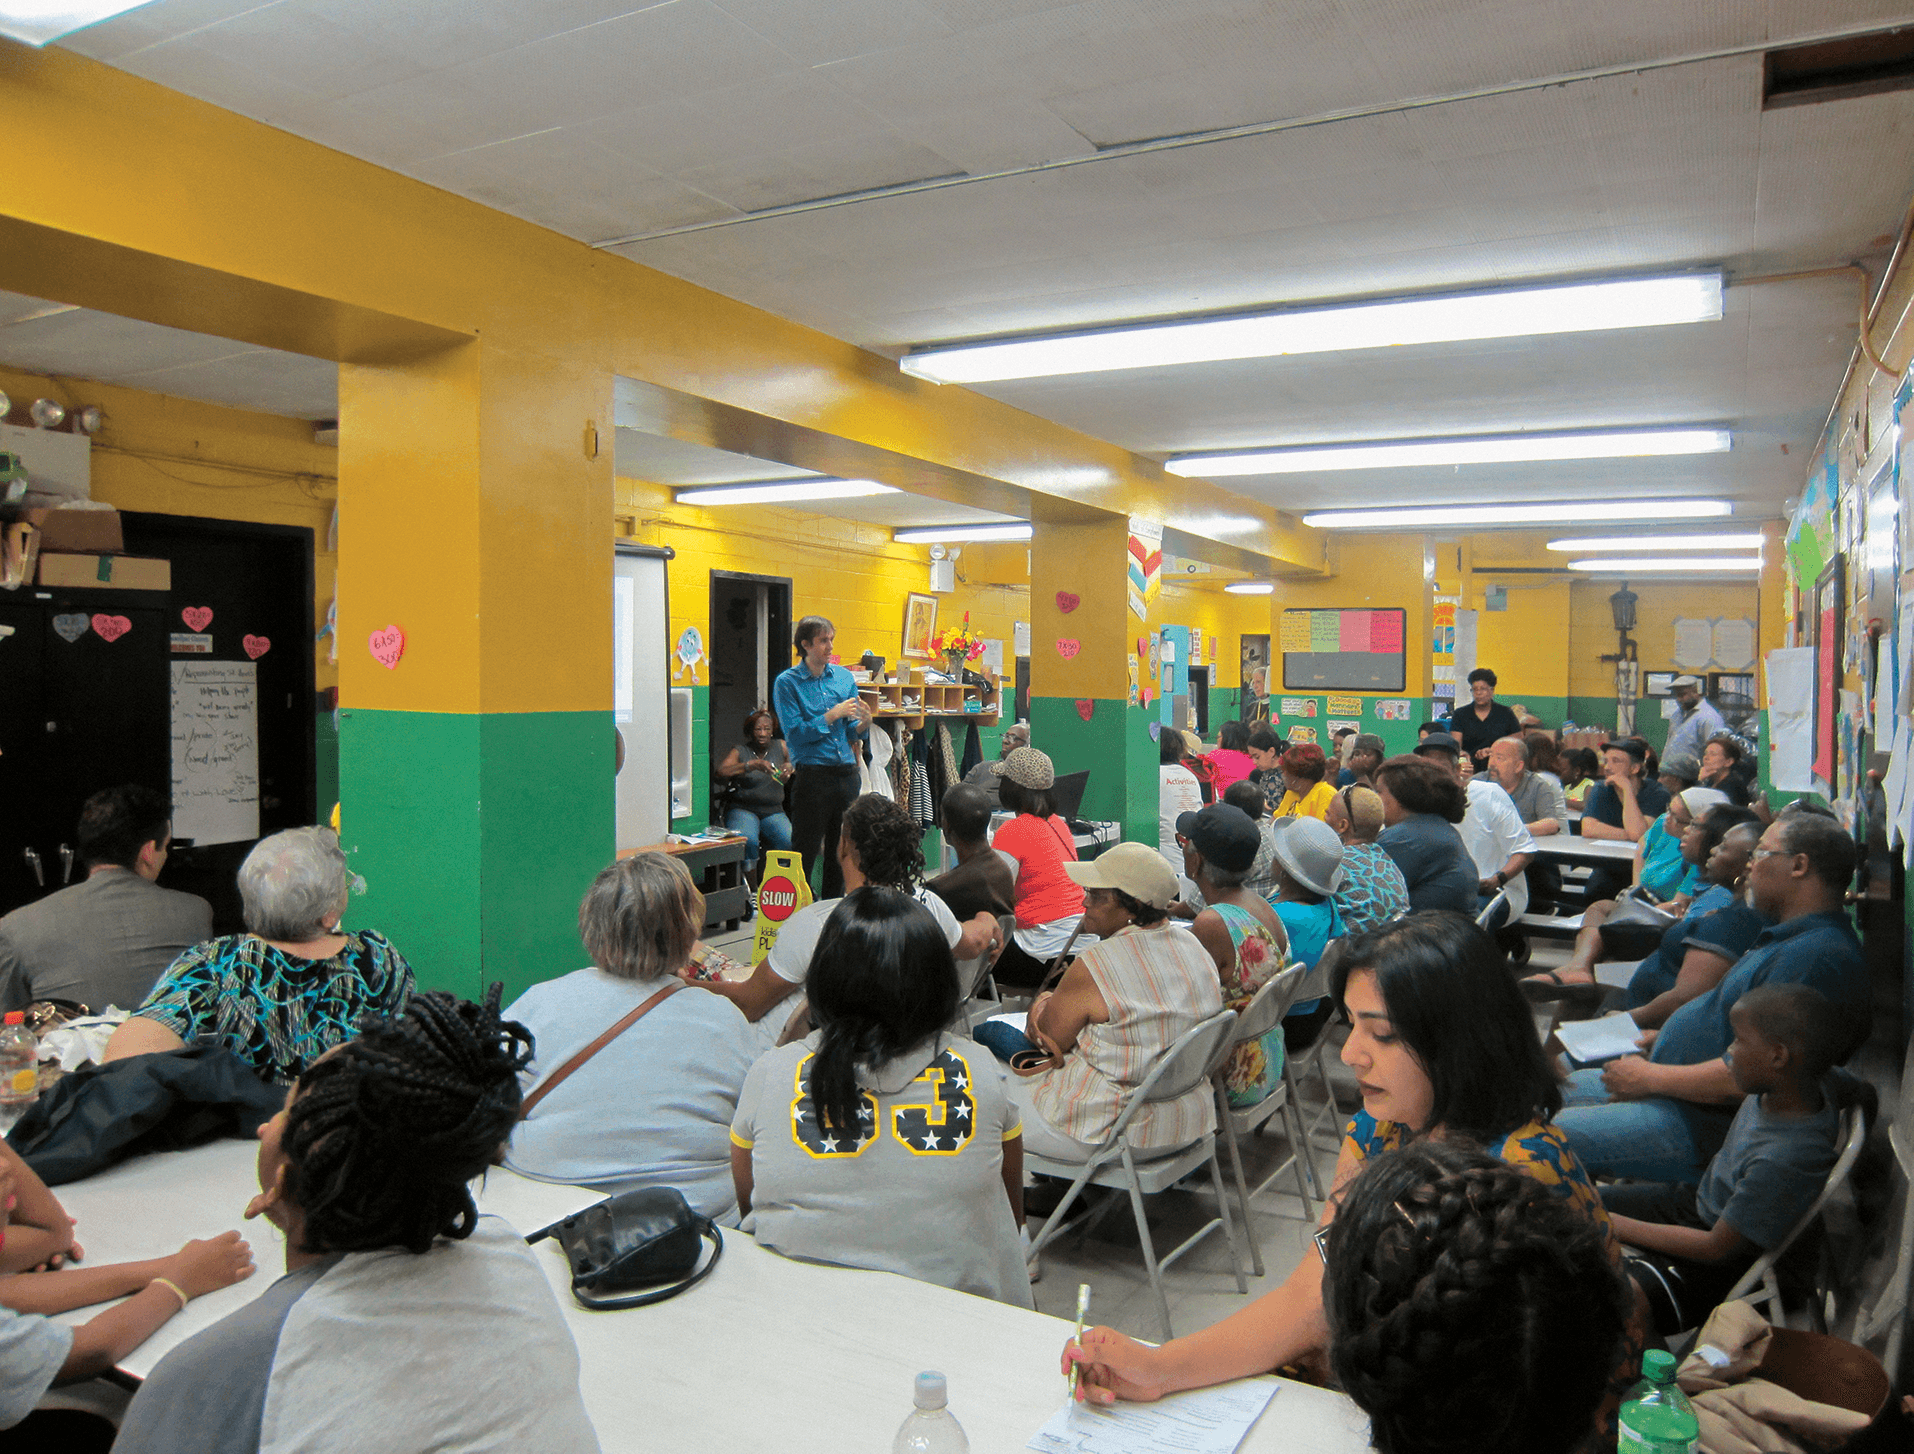 May 31, 2016  Visioning Session held in a classroom with a diverse group of people.